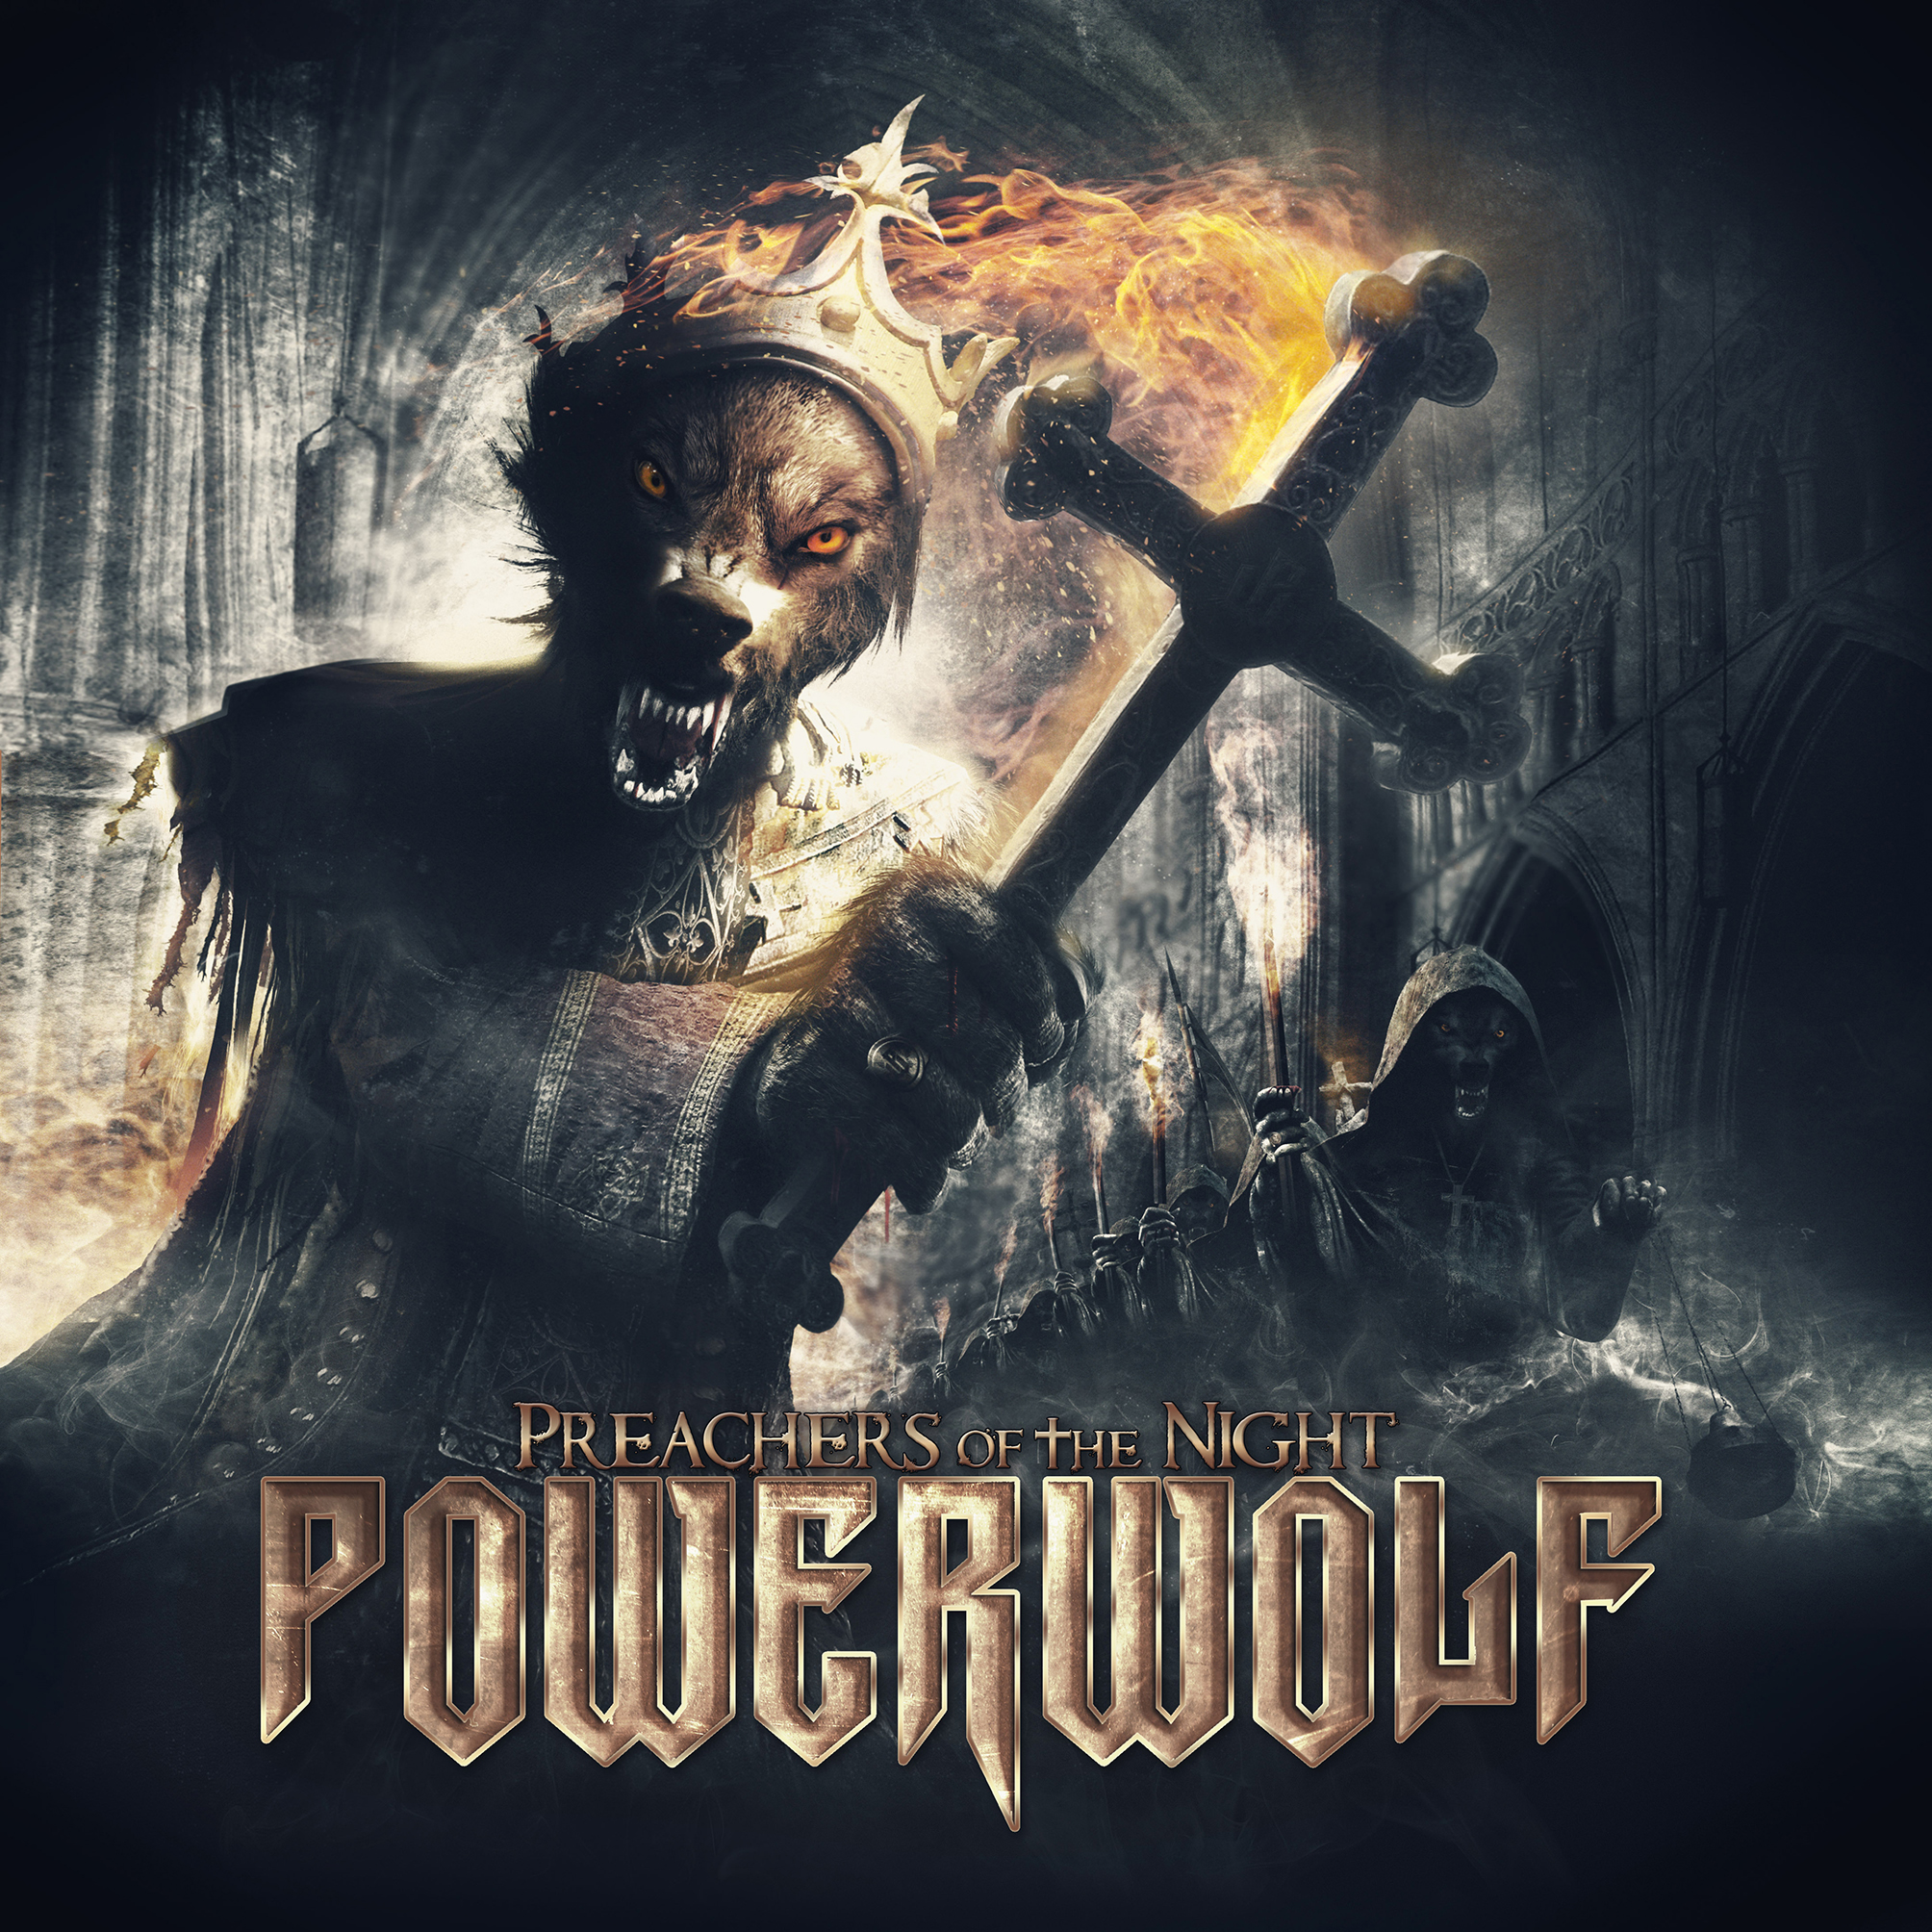 Powerwolf - Preachers Of The Night - Cover